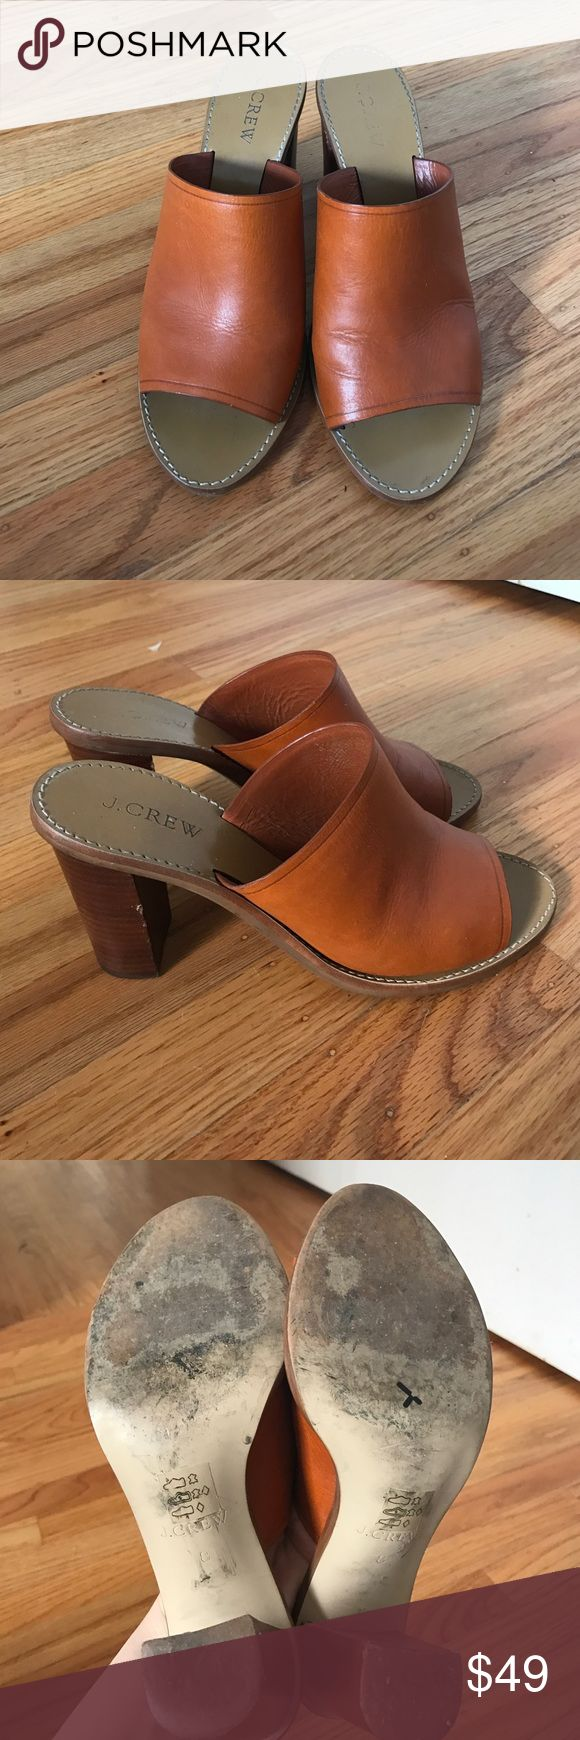 JCrew Mules. Size 8 JCrew Mules. Size 8. Minimal wear. jcrew Shoes Mules & Clogs